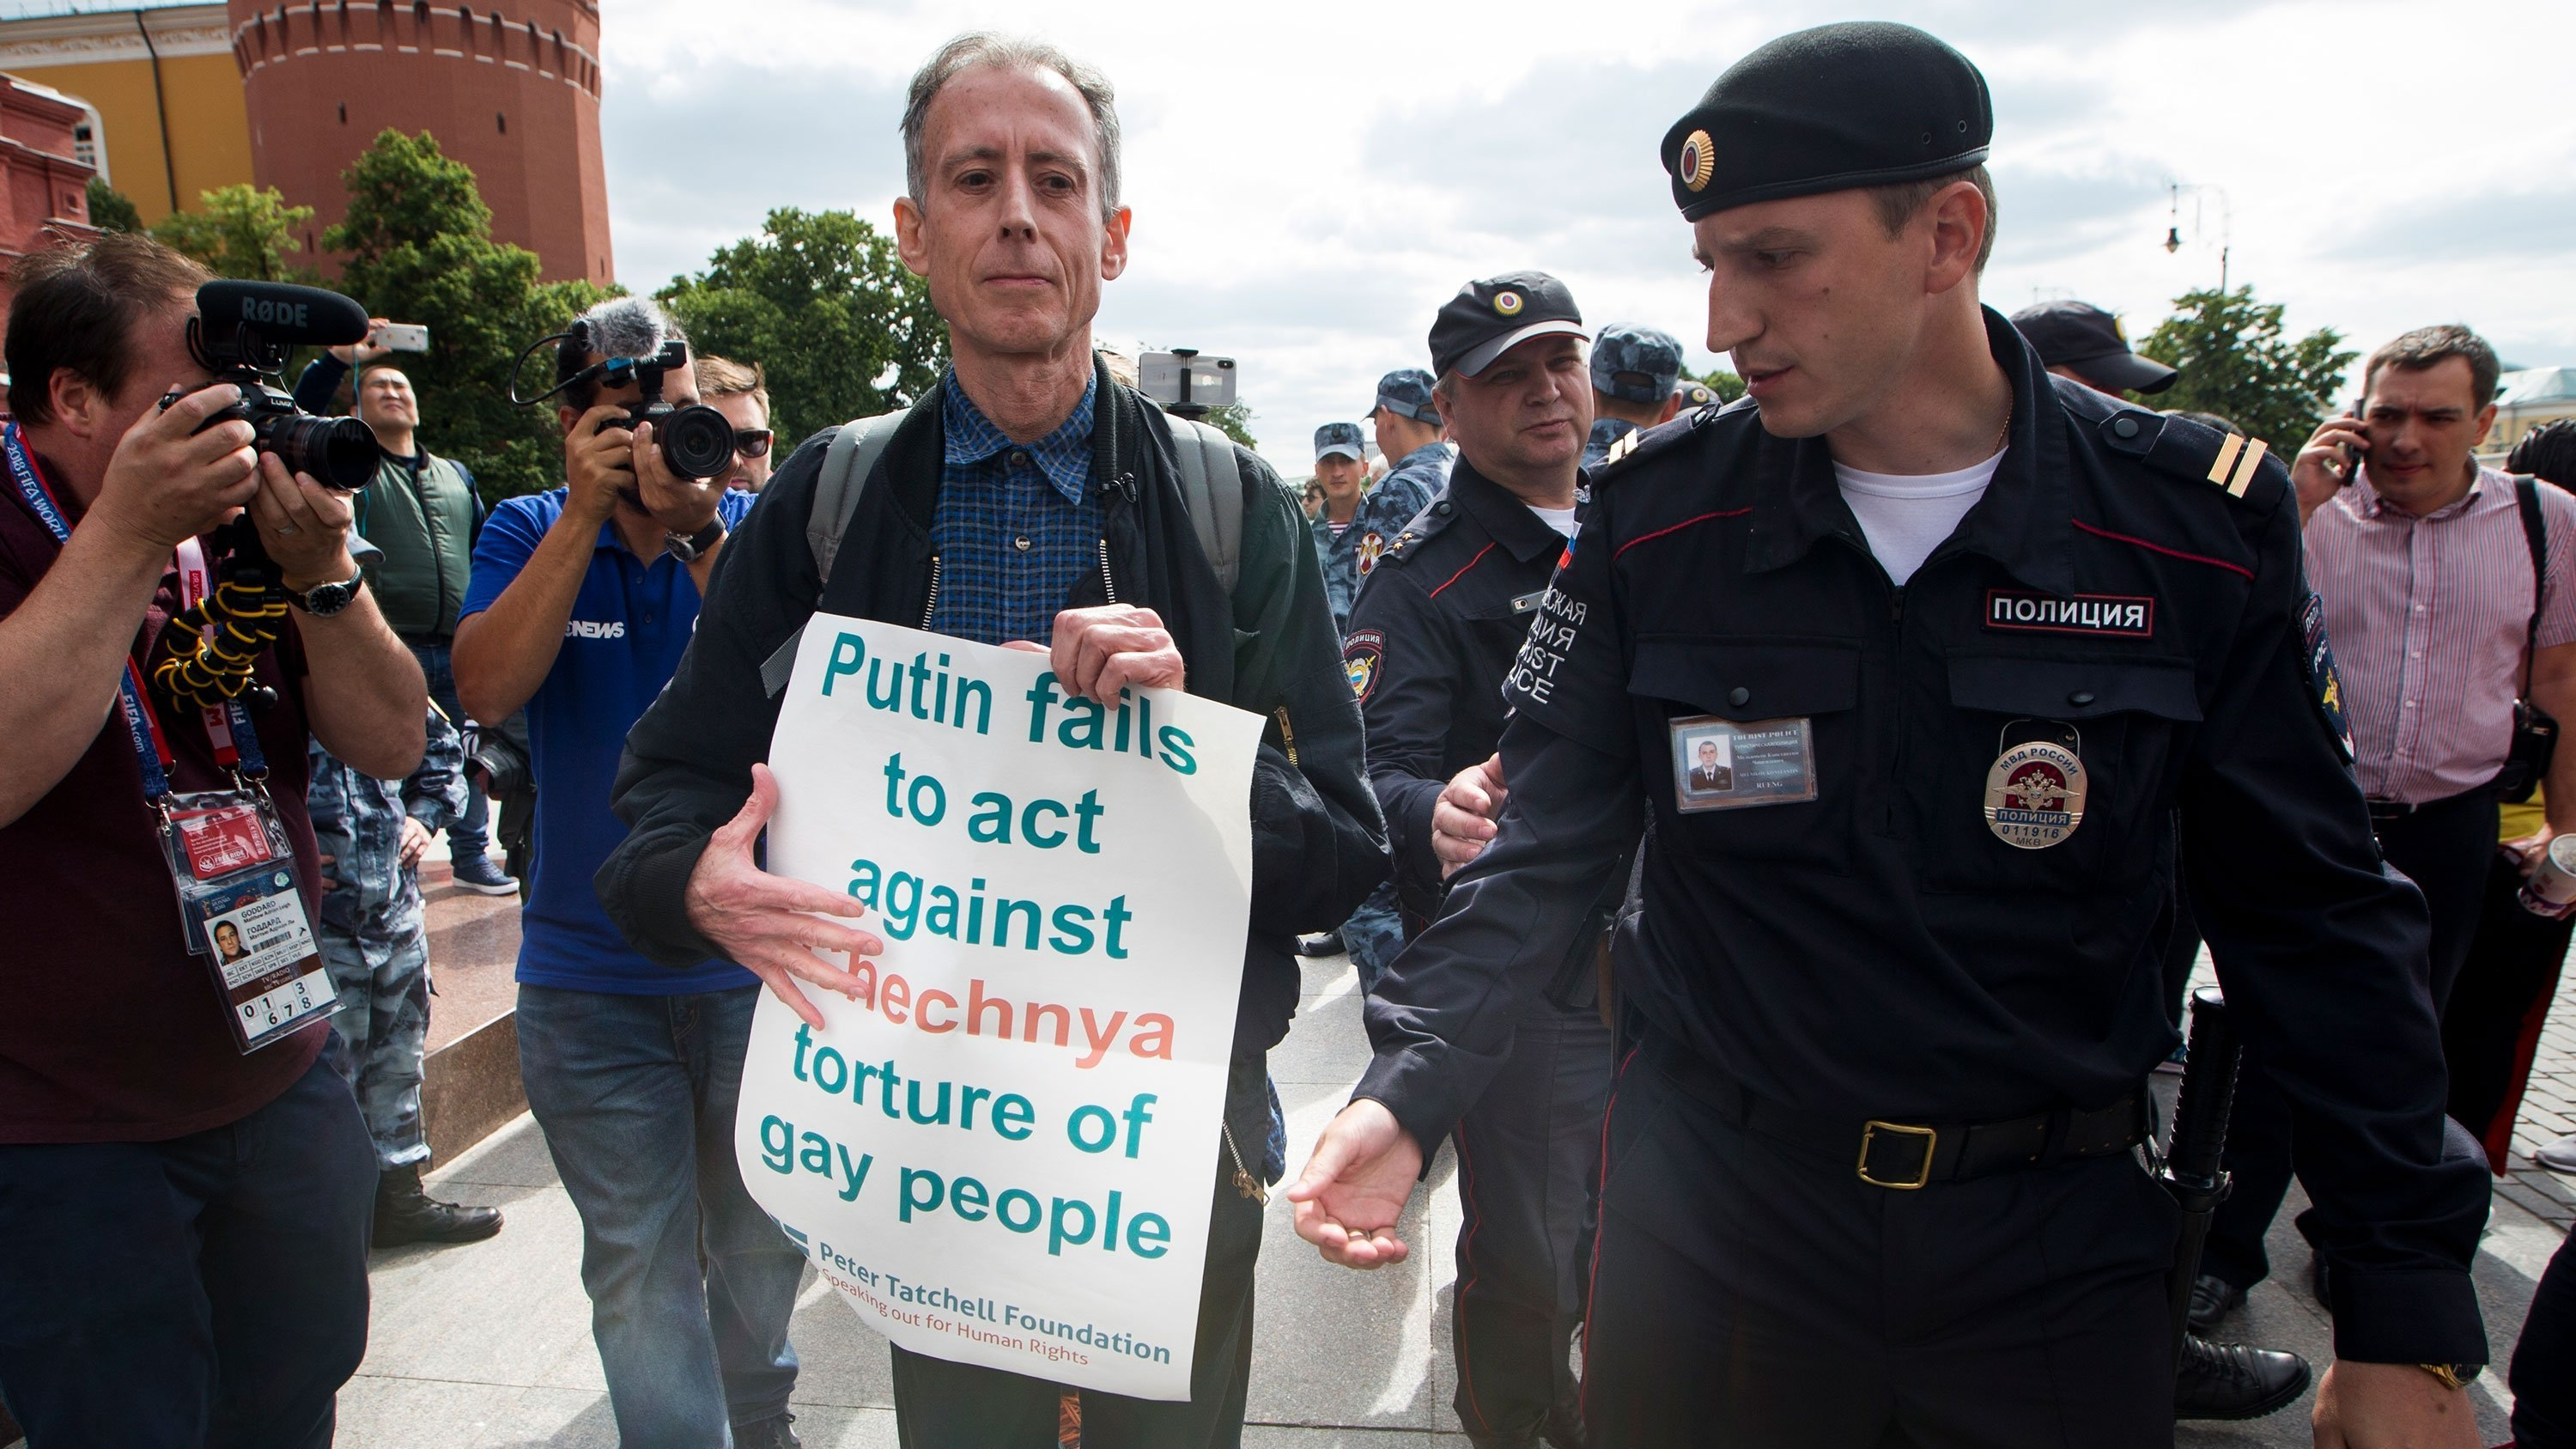 UK-based gay rights activist Peter Tatchell was briefly detained by police in Moscow on the opening day of the month-long World Cup soccer tournament in Russia, according to his official Twitter account.